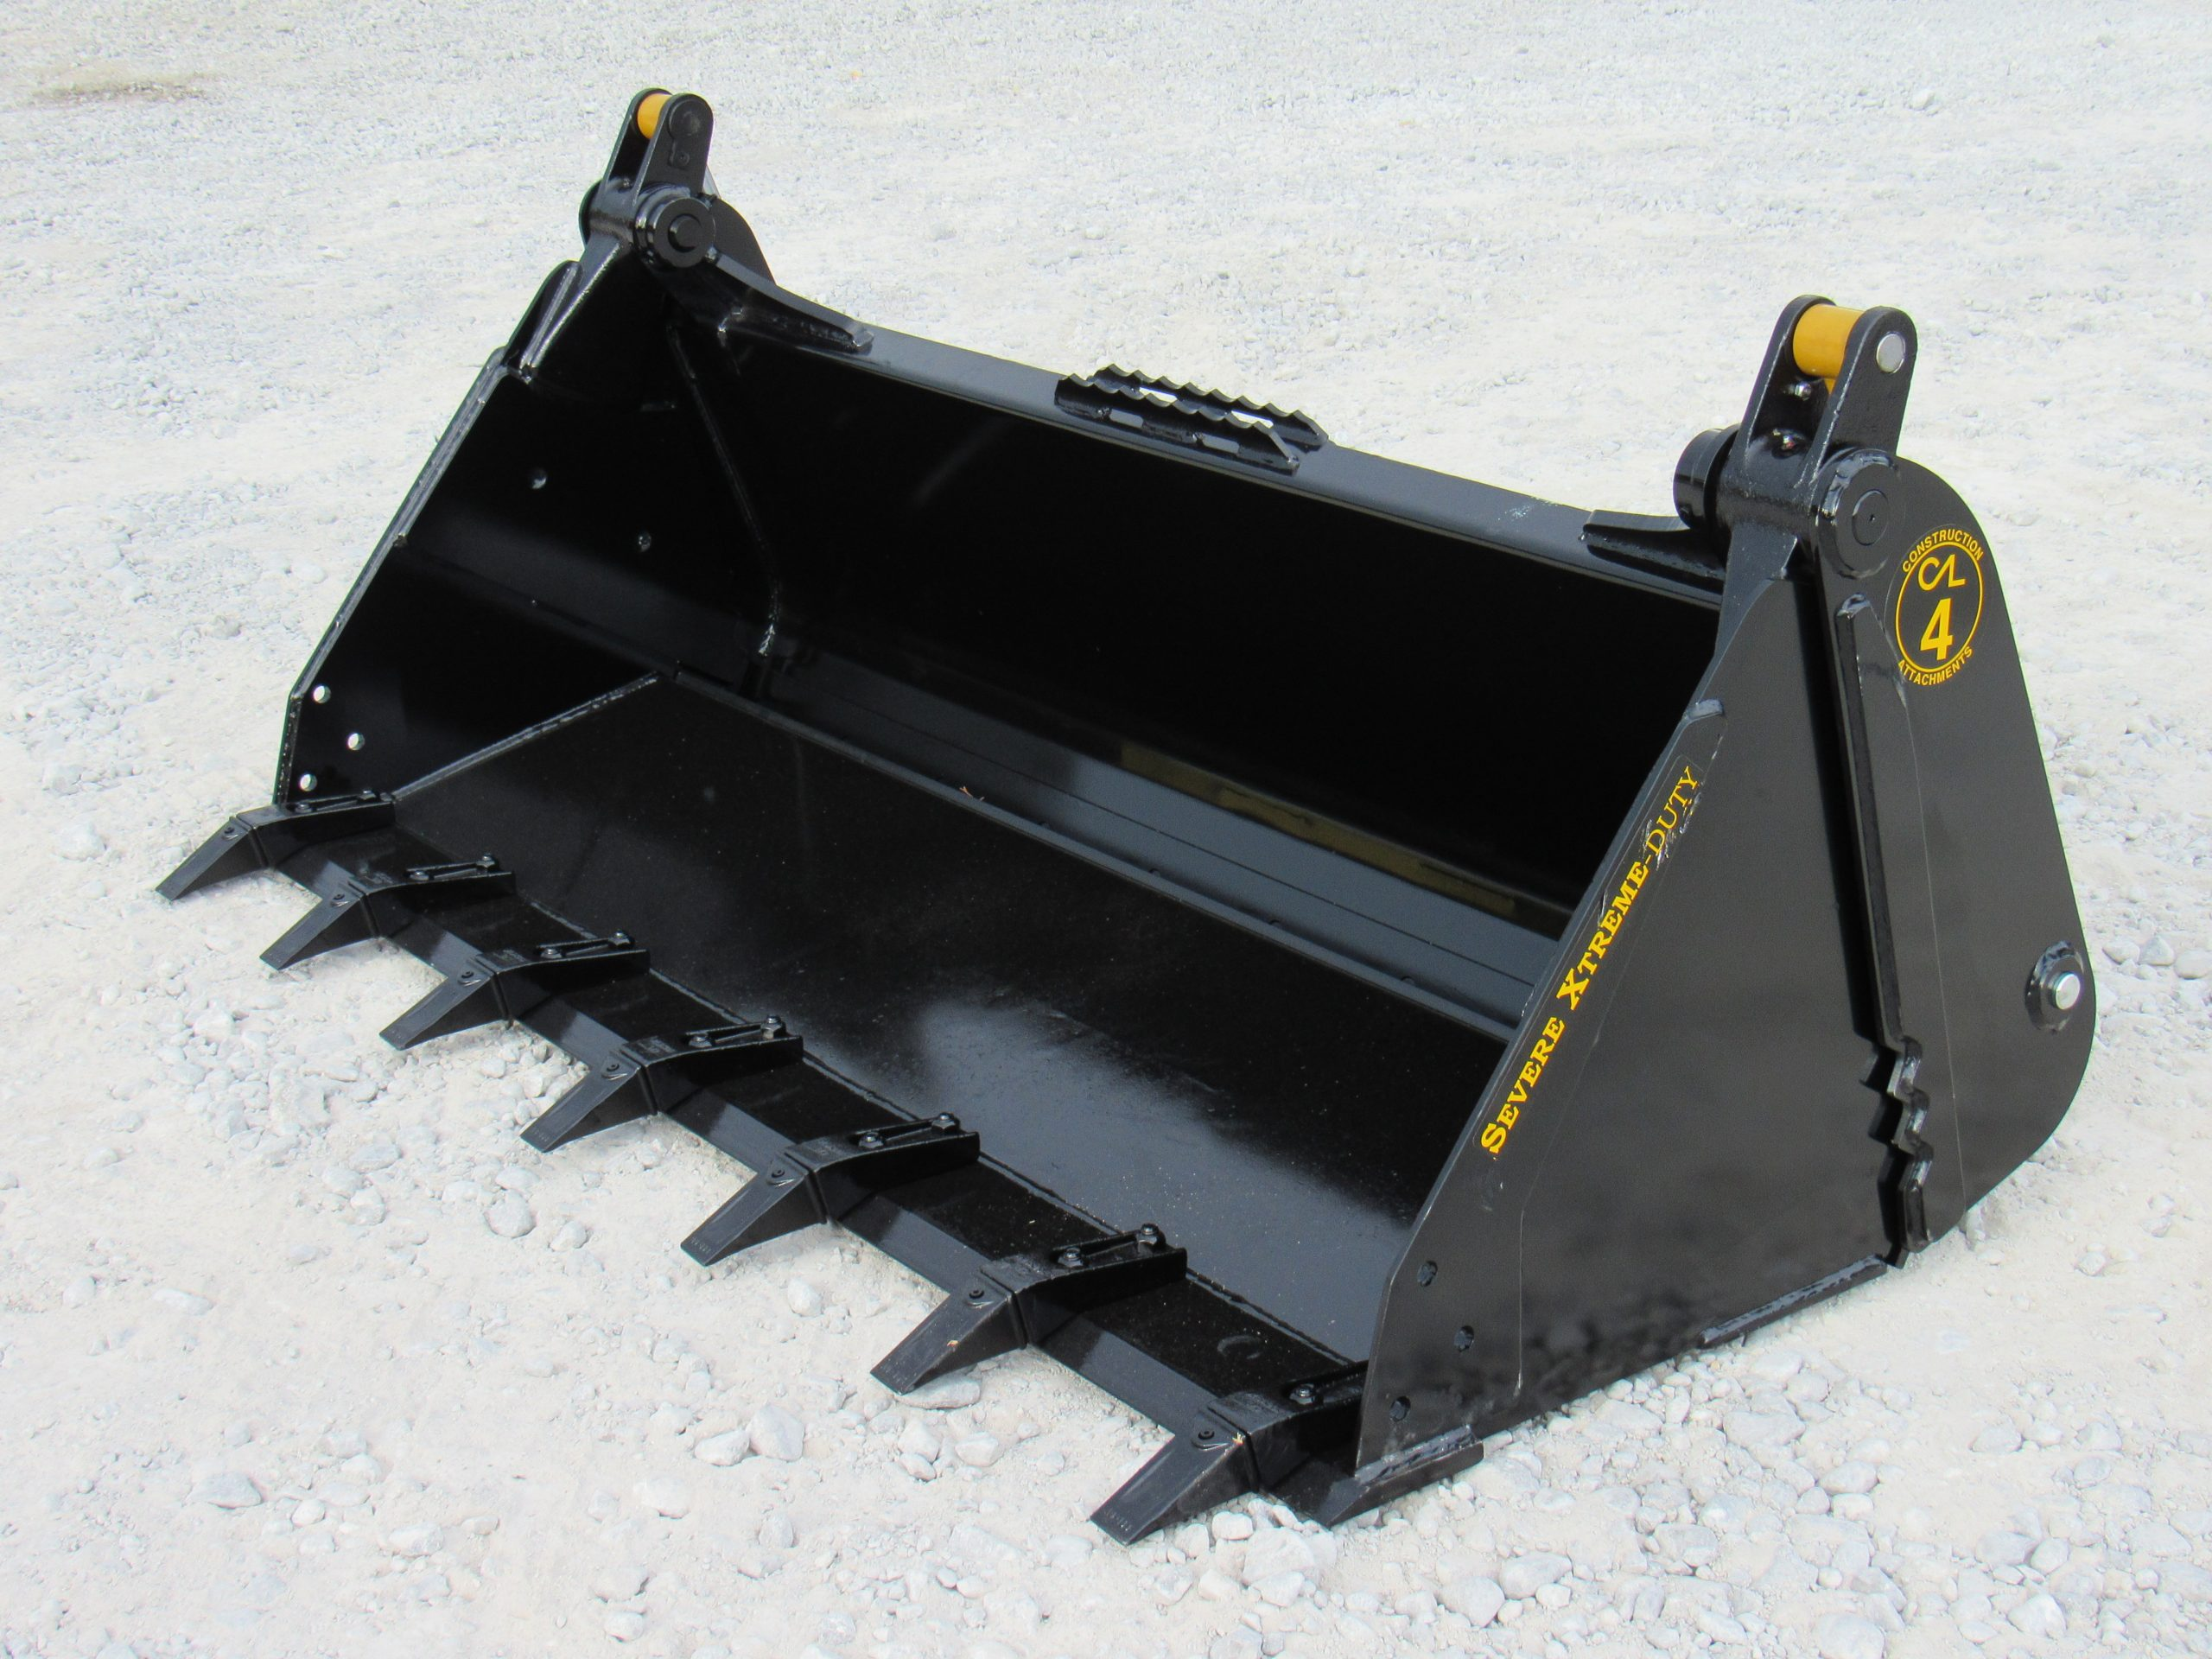 73 Construction Attachments 4 In 1 Severe Xtreme Tooth Bucket Skid Steer Attachment Depot